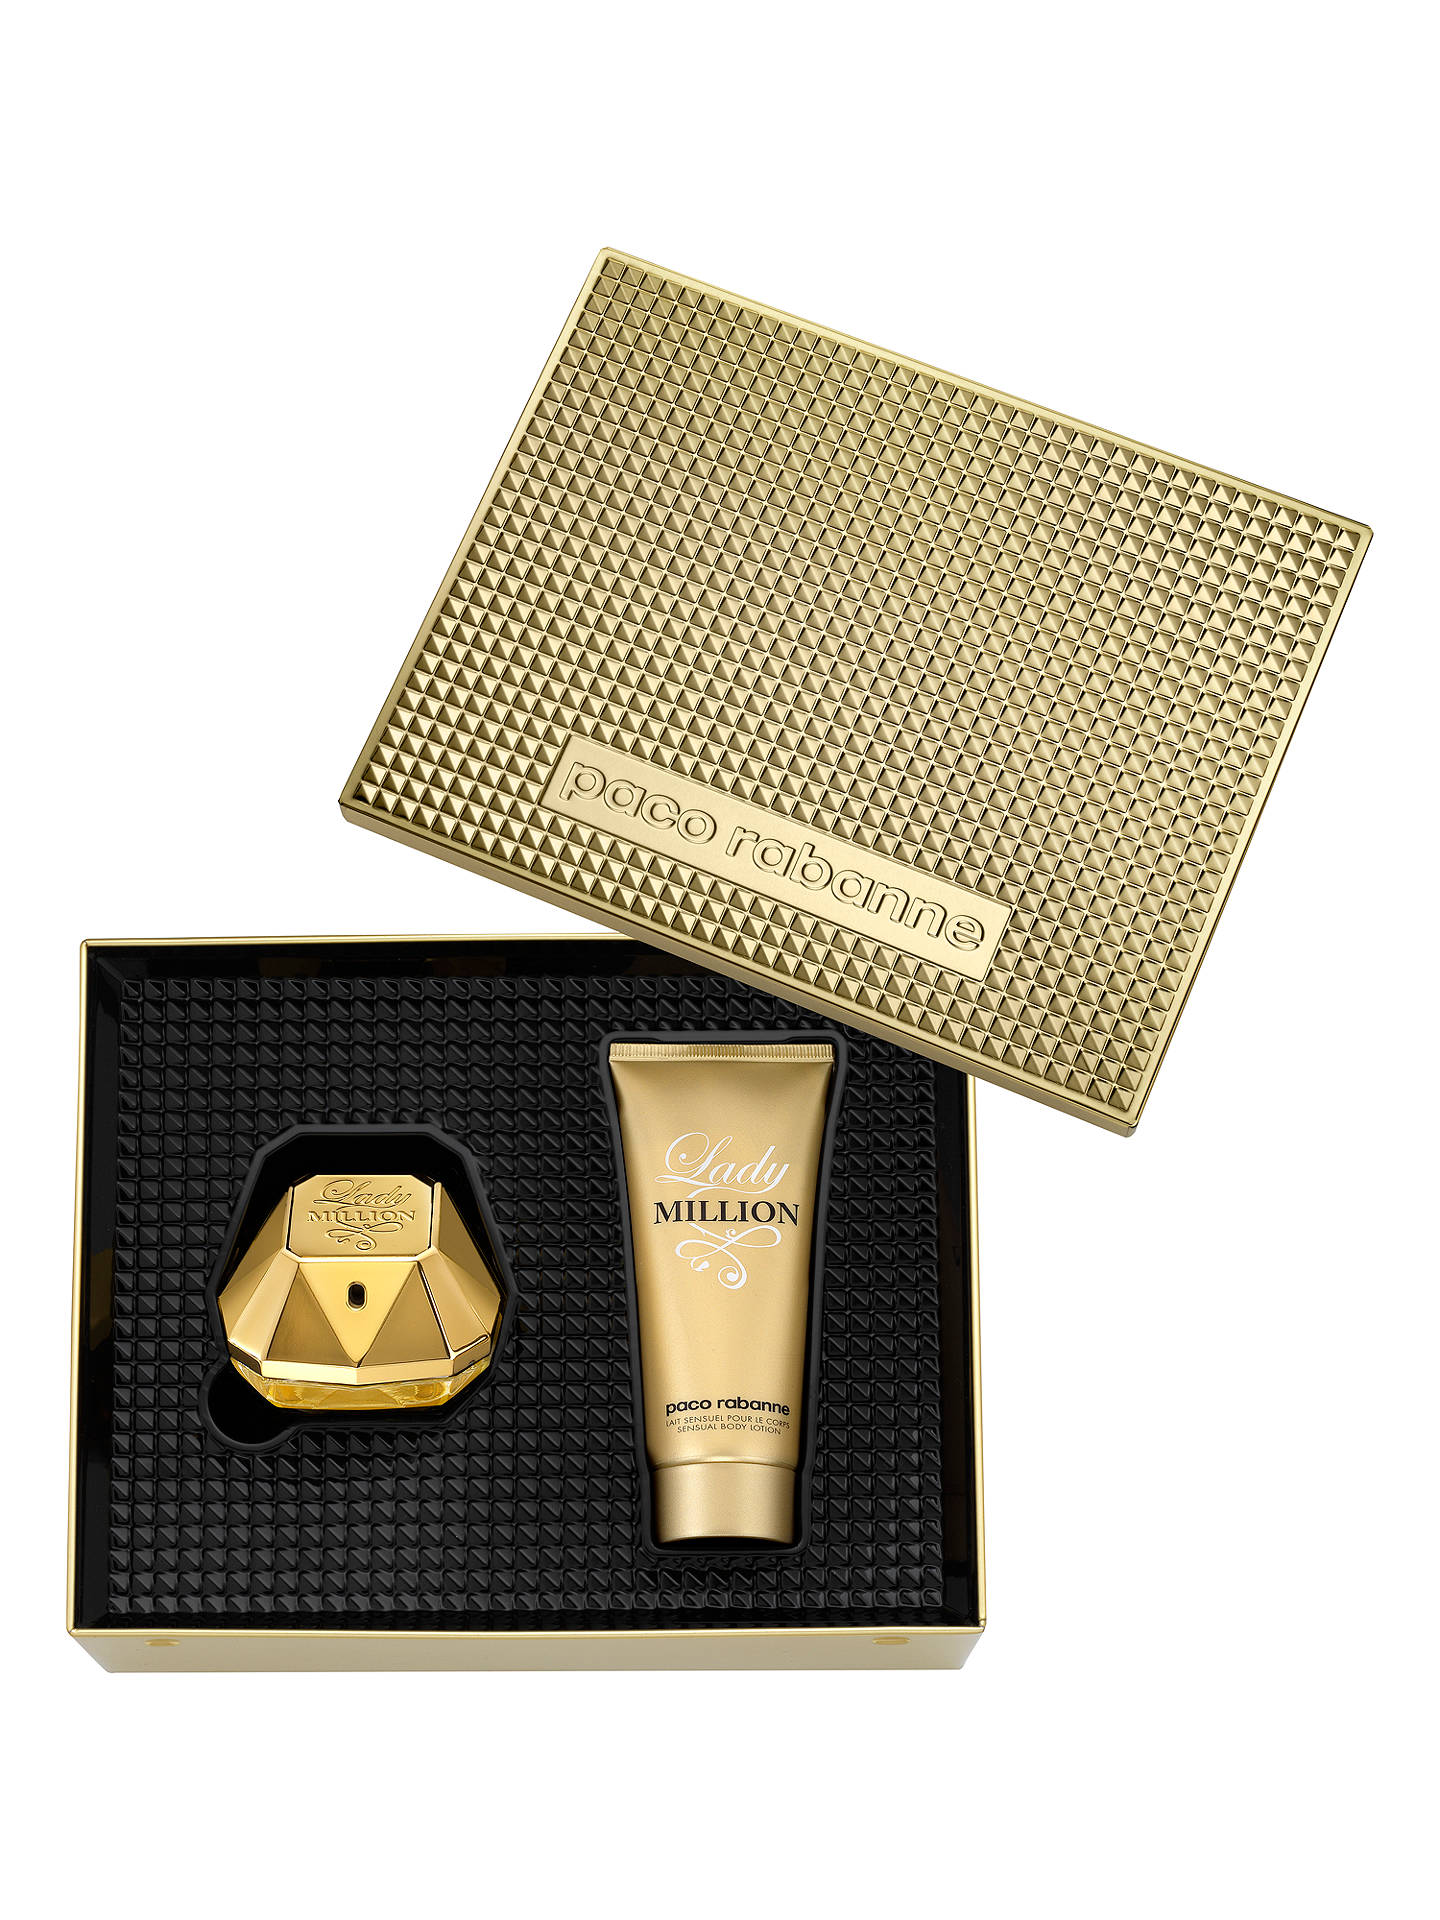 BuyPaco Rabanne Lady Million 50ml Eau de Parfum Fragrance Gift Set Online at johnlewis.com